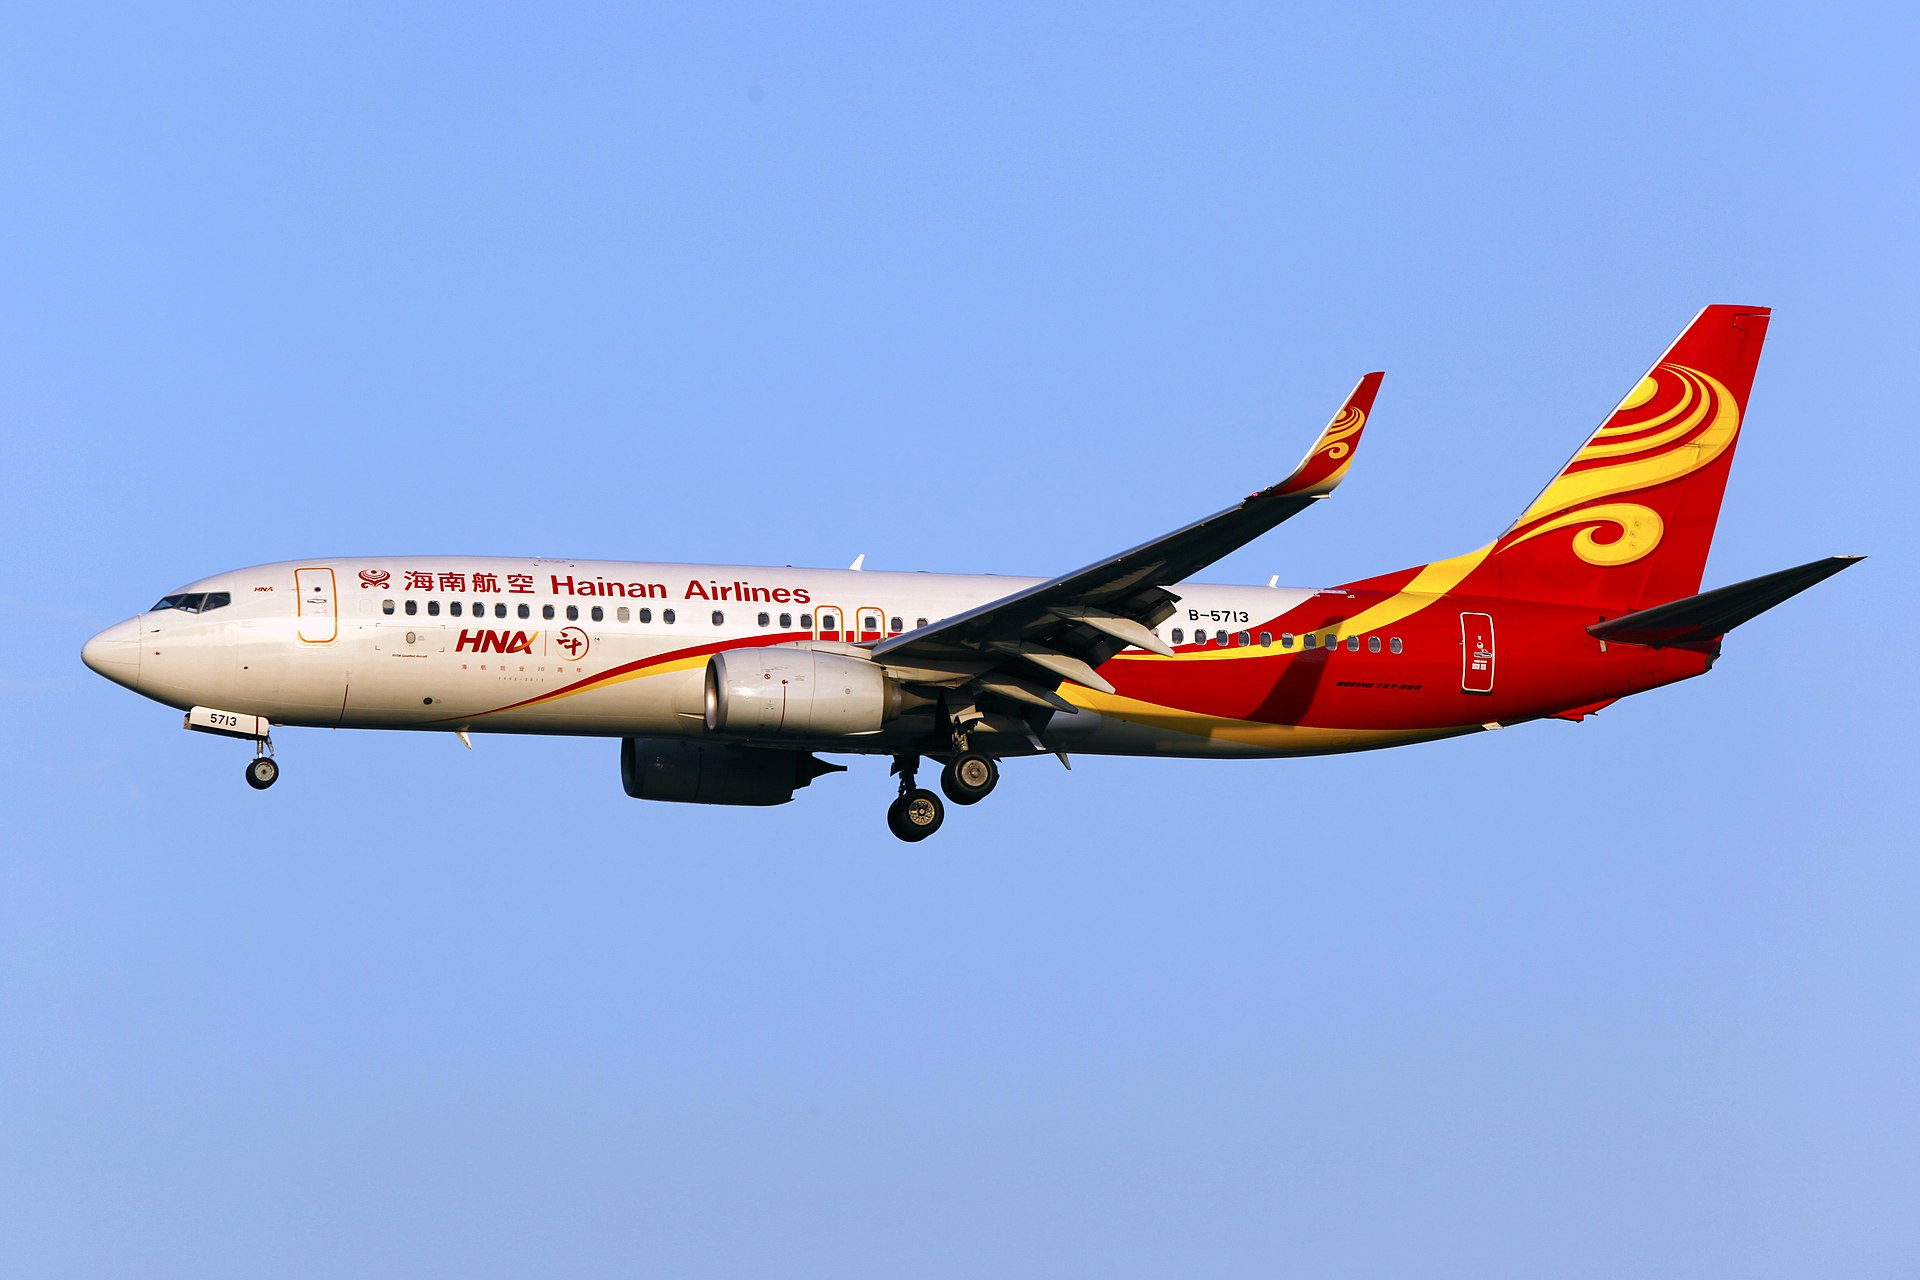 World's largest airline by market cap: Hainan Airlines